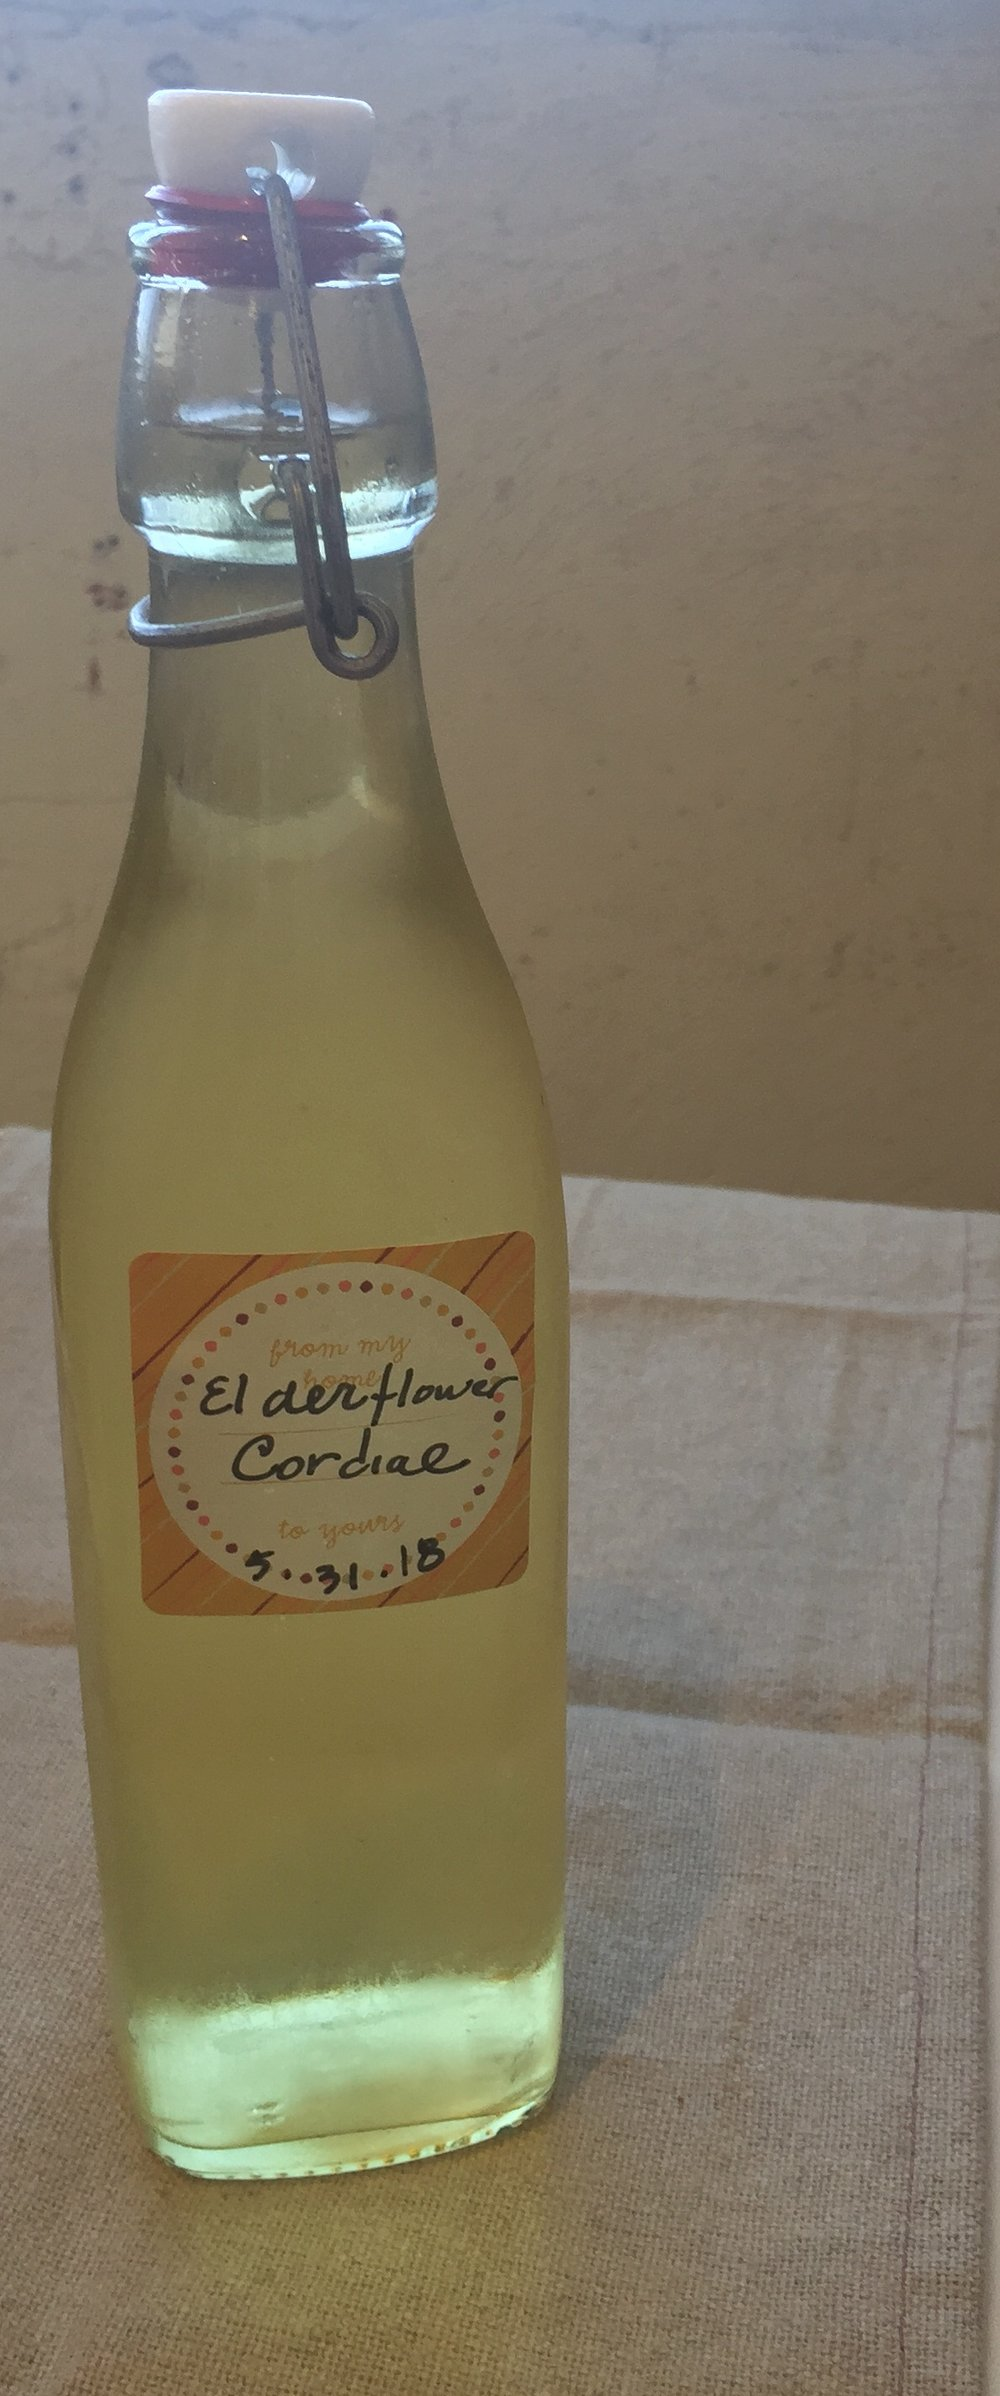 Tall, cool, floral and sweet...Elderflower Cordial